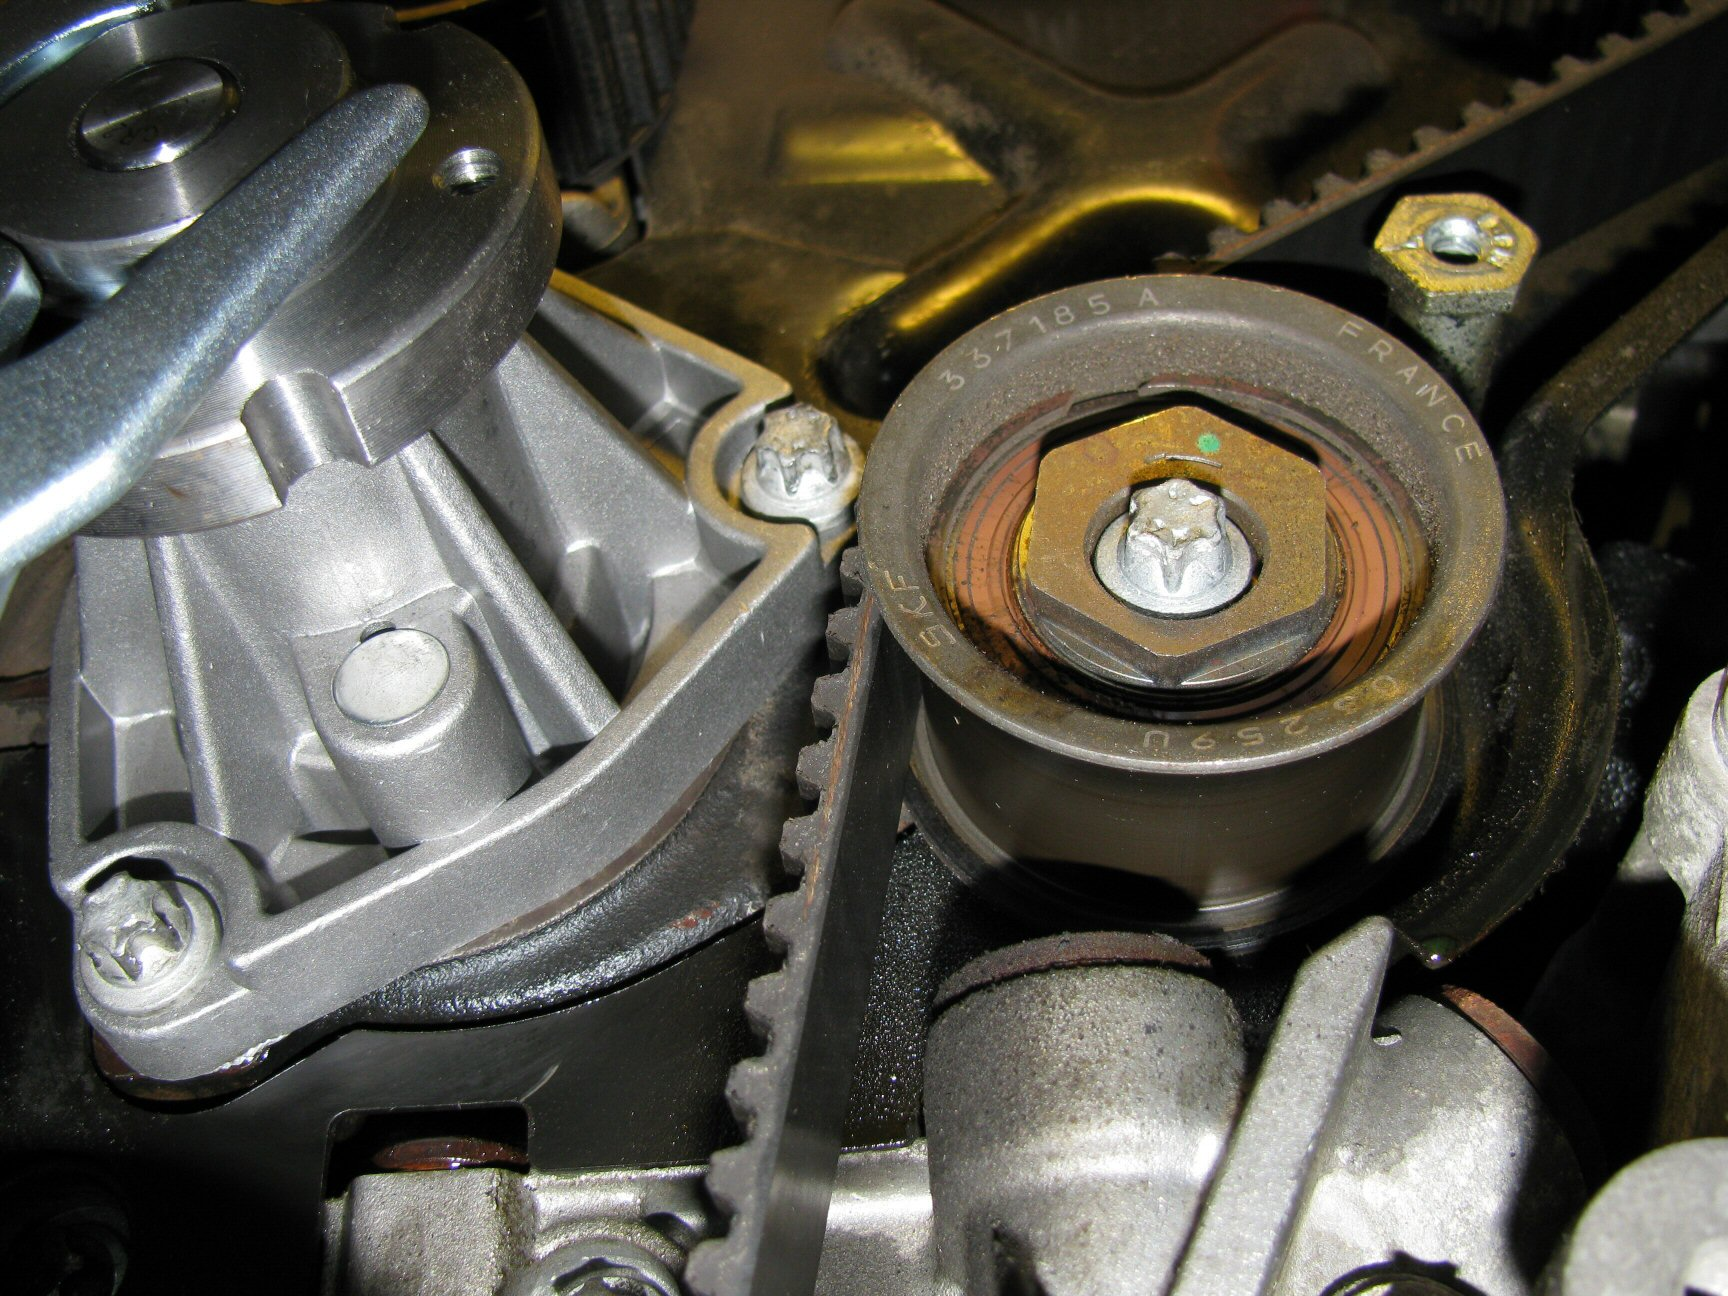 Lower idler pulley. Note the location of the green dot indicating a good initial position of 12 o'clock.